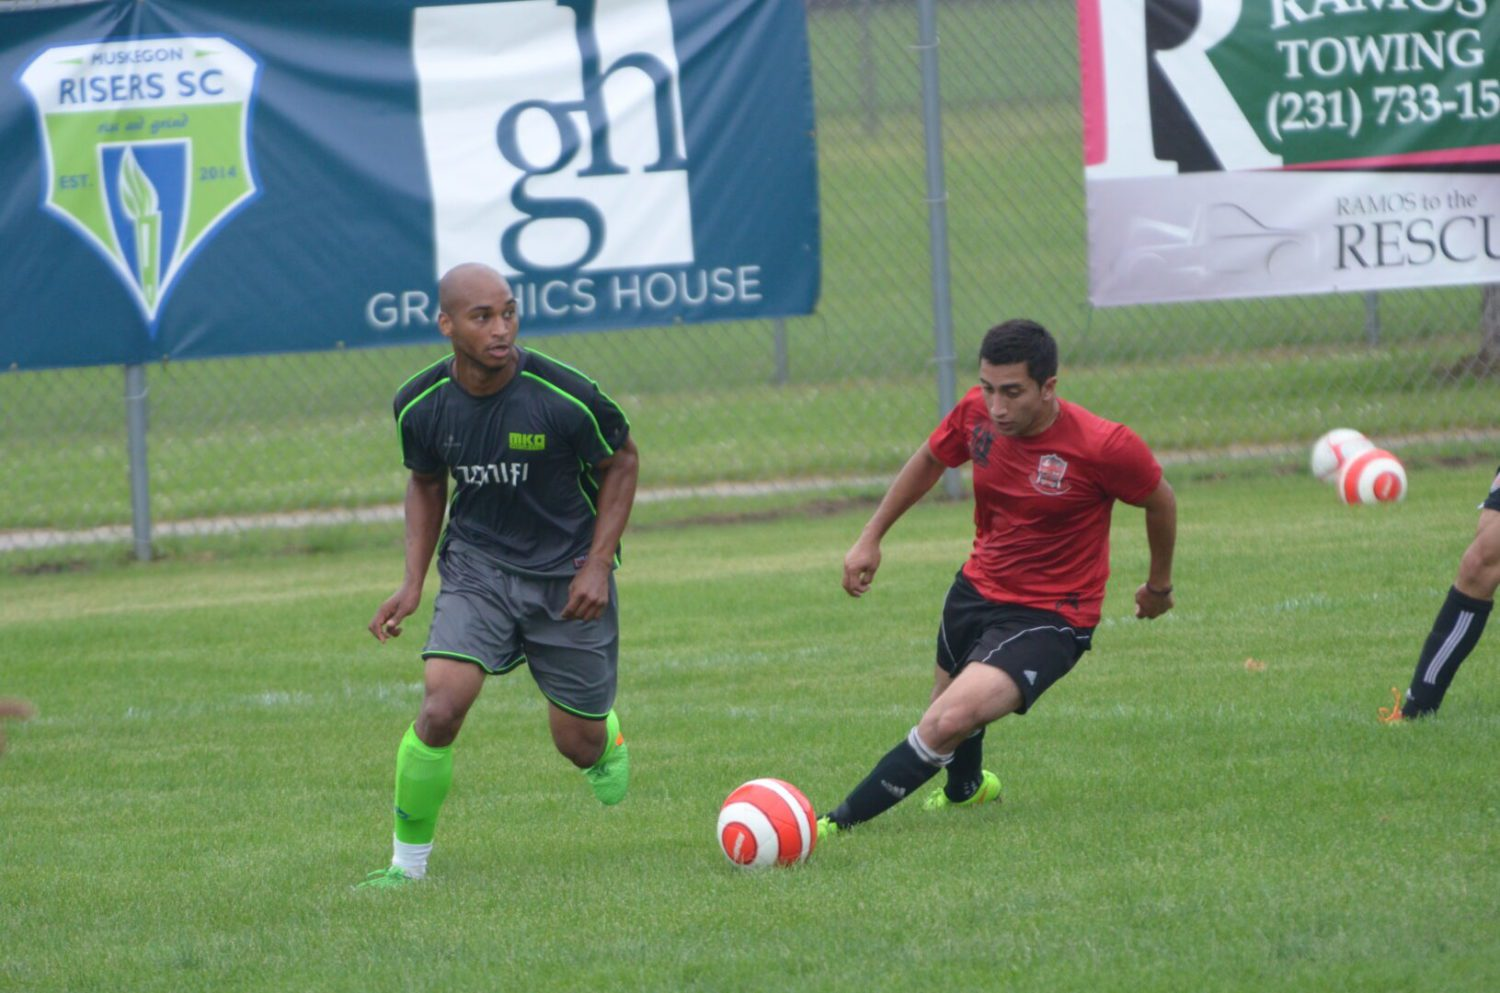 Muskegon Risers remain unbeaten at home following a 5-1 whipping of Brujos FC in front of another big crowd